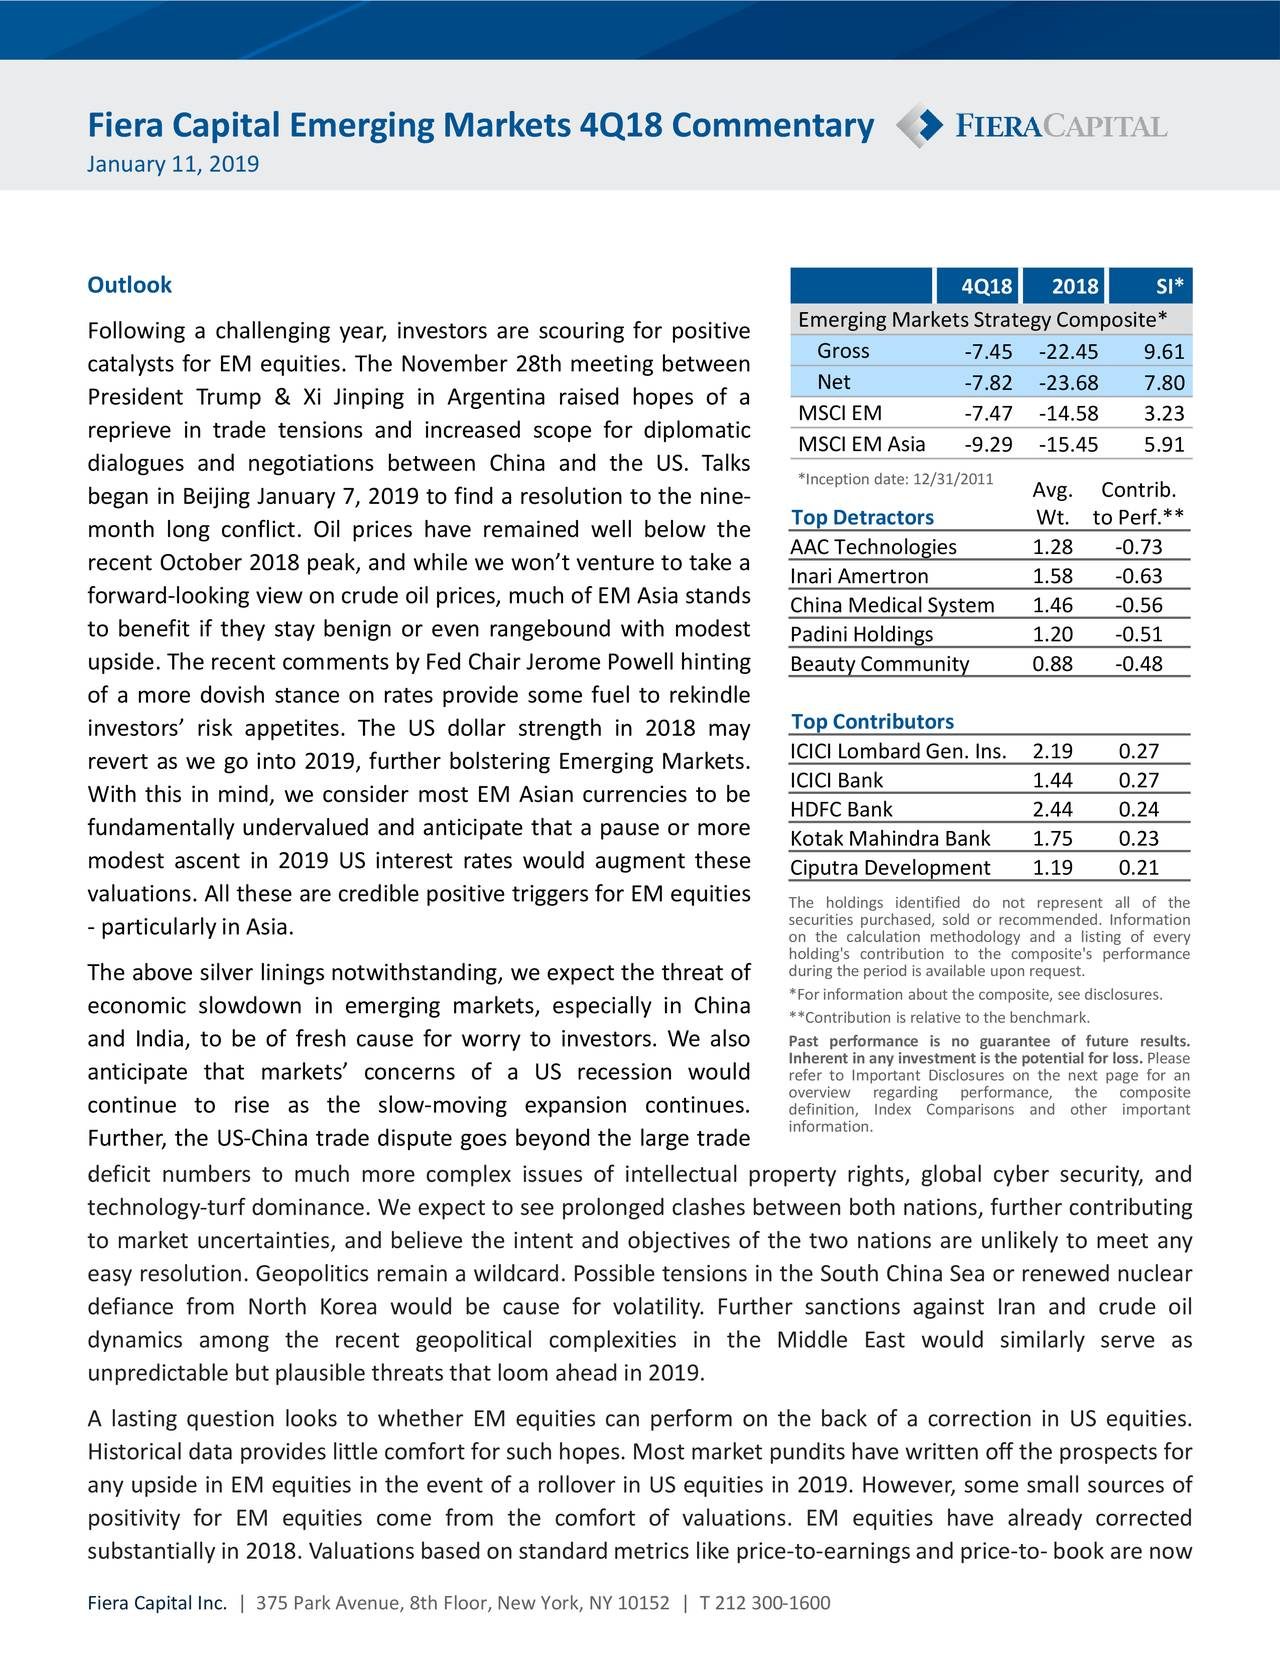 January 11, 2019 Outlook 4Q18 2018 SI* Emerging Markets StrategyComposite* Following a challenging year, investors are scouring for positive catalysts for EM equities. The November 28th meeting between Gross -7.45 -22.45 9.61 Net -7.82 -23.68 7.80 President Trump & Xi Jinping in Argentina raised hopes of a MSCI EM -7.47 -14.58 3.23 reprieve in trade tensions and increased scope for diplomatic dialogues and negotiations between China and the US. Talks MSCI EM Asia -9.29 -15.45 5.91 *Inception date: 12/31/2011 began in Beijing January 7, 2019 to find a resolution to the nine- Avg. Contrib. month long conflict. Oil prices have remained well below the Top Detractors Wt. to Perf.** AAC Technologies 1.28 -0.73 recent October 2018 peak, and while we won't venture to take a Inari Amertron 1.58 -0.63 forward‐looking view on crude oil prices, much of EM Asia stands China Medical System 1.46 -0.56 to benefit if they stay benign or even rangebound with modest Padini Holdings 1.20 -0.51 upside. The recent comments by Fed Chair Jerome Powell hinting Beauty Community 0.88 -0.48 of a more dovish stance on rates provide some fuel to rekindle investors' risk appetites. The US dollar strength in 2018 may Top Contributors revert as we go into 2019, further bolstering Emerging Markets. ICICI Lombard Gen. Ins. 2.19 0.27 ICICI Bank 1.44 0.27 With this in mind, we consider most EM Asian currencies to be HDFC Bank 2.44 0.24 fundamentally undervalued and anticipate that a pause or more KotakMahindra Bank 1.75 0.23 modest ascent in 2019 US interest rates would augment these Ciputra Development 1.19 0.21 valuations. All these are credible positive triggers for EM equities The holdings identified do not represent all of the securities purchased, sold or recommended. Information ‐ particularlyin Asia. on the calculation methodology and a listing of every during the period is available upon request.rformance The above silver linings notwithstanding, we expect the threat of *For information about 